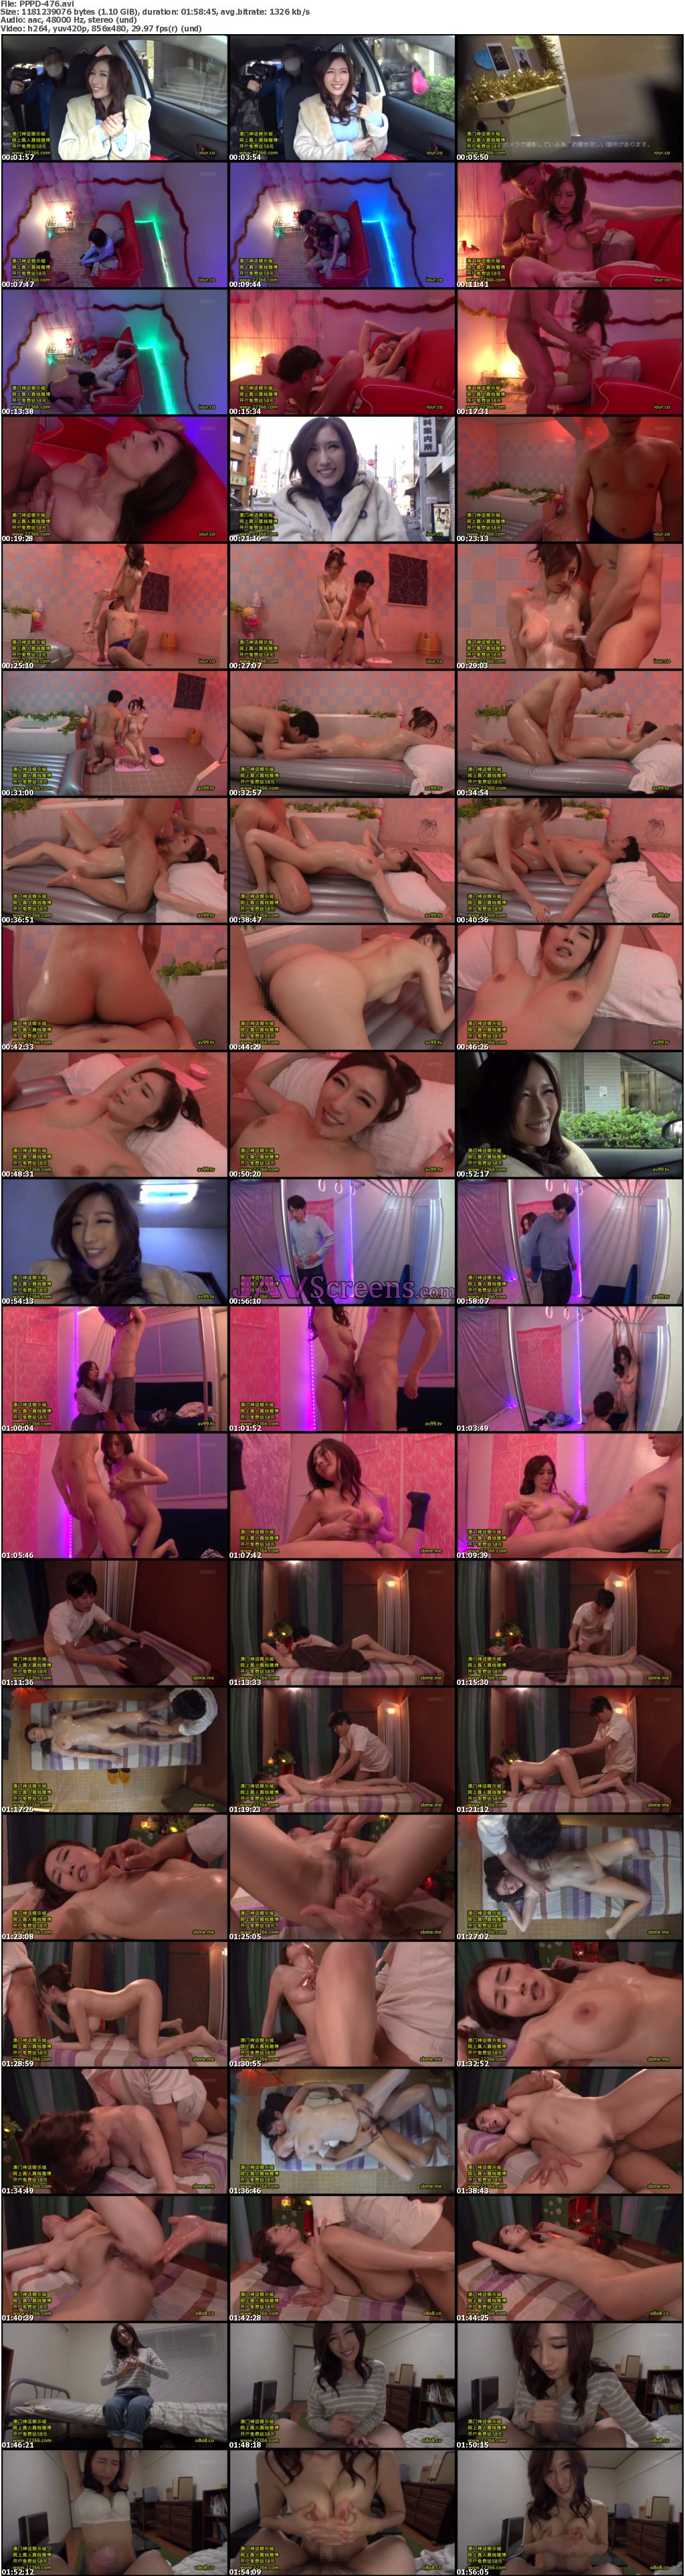 PPPD-476.jpg - JAV Screenshot